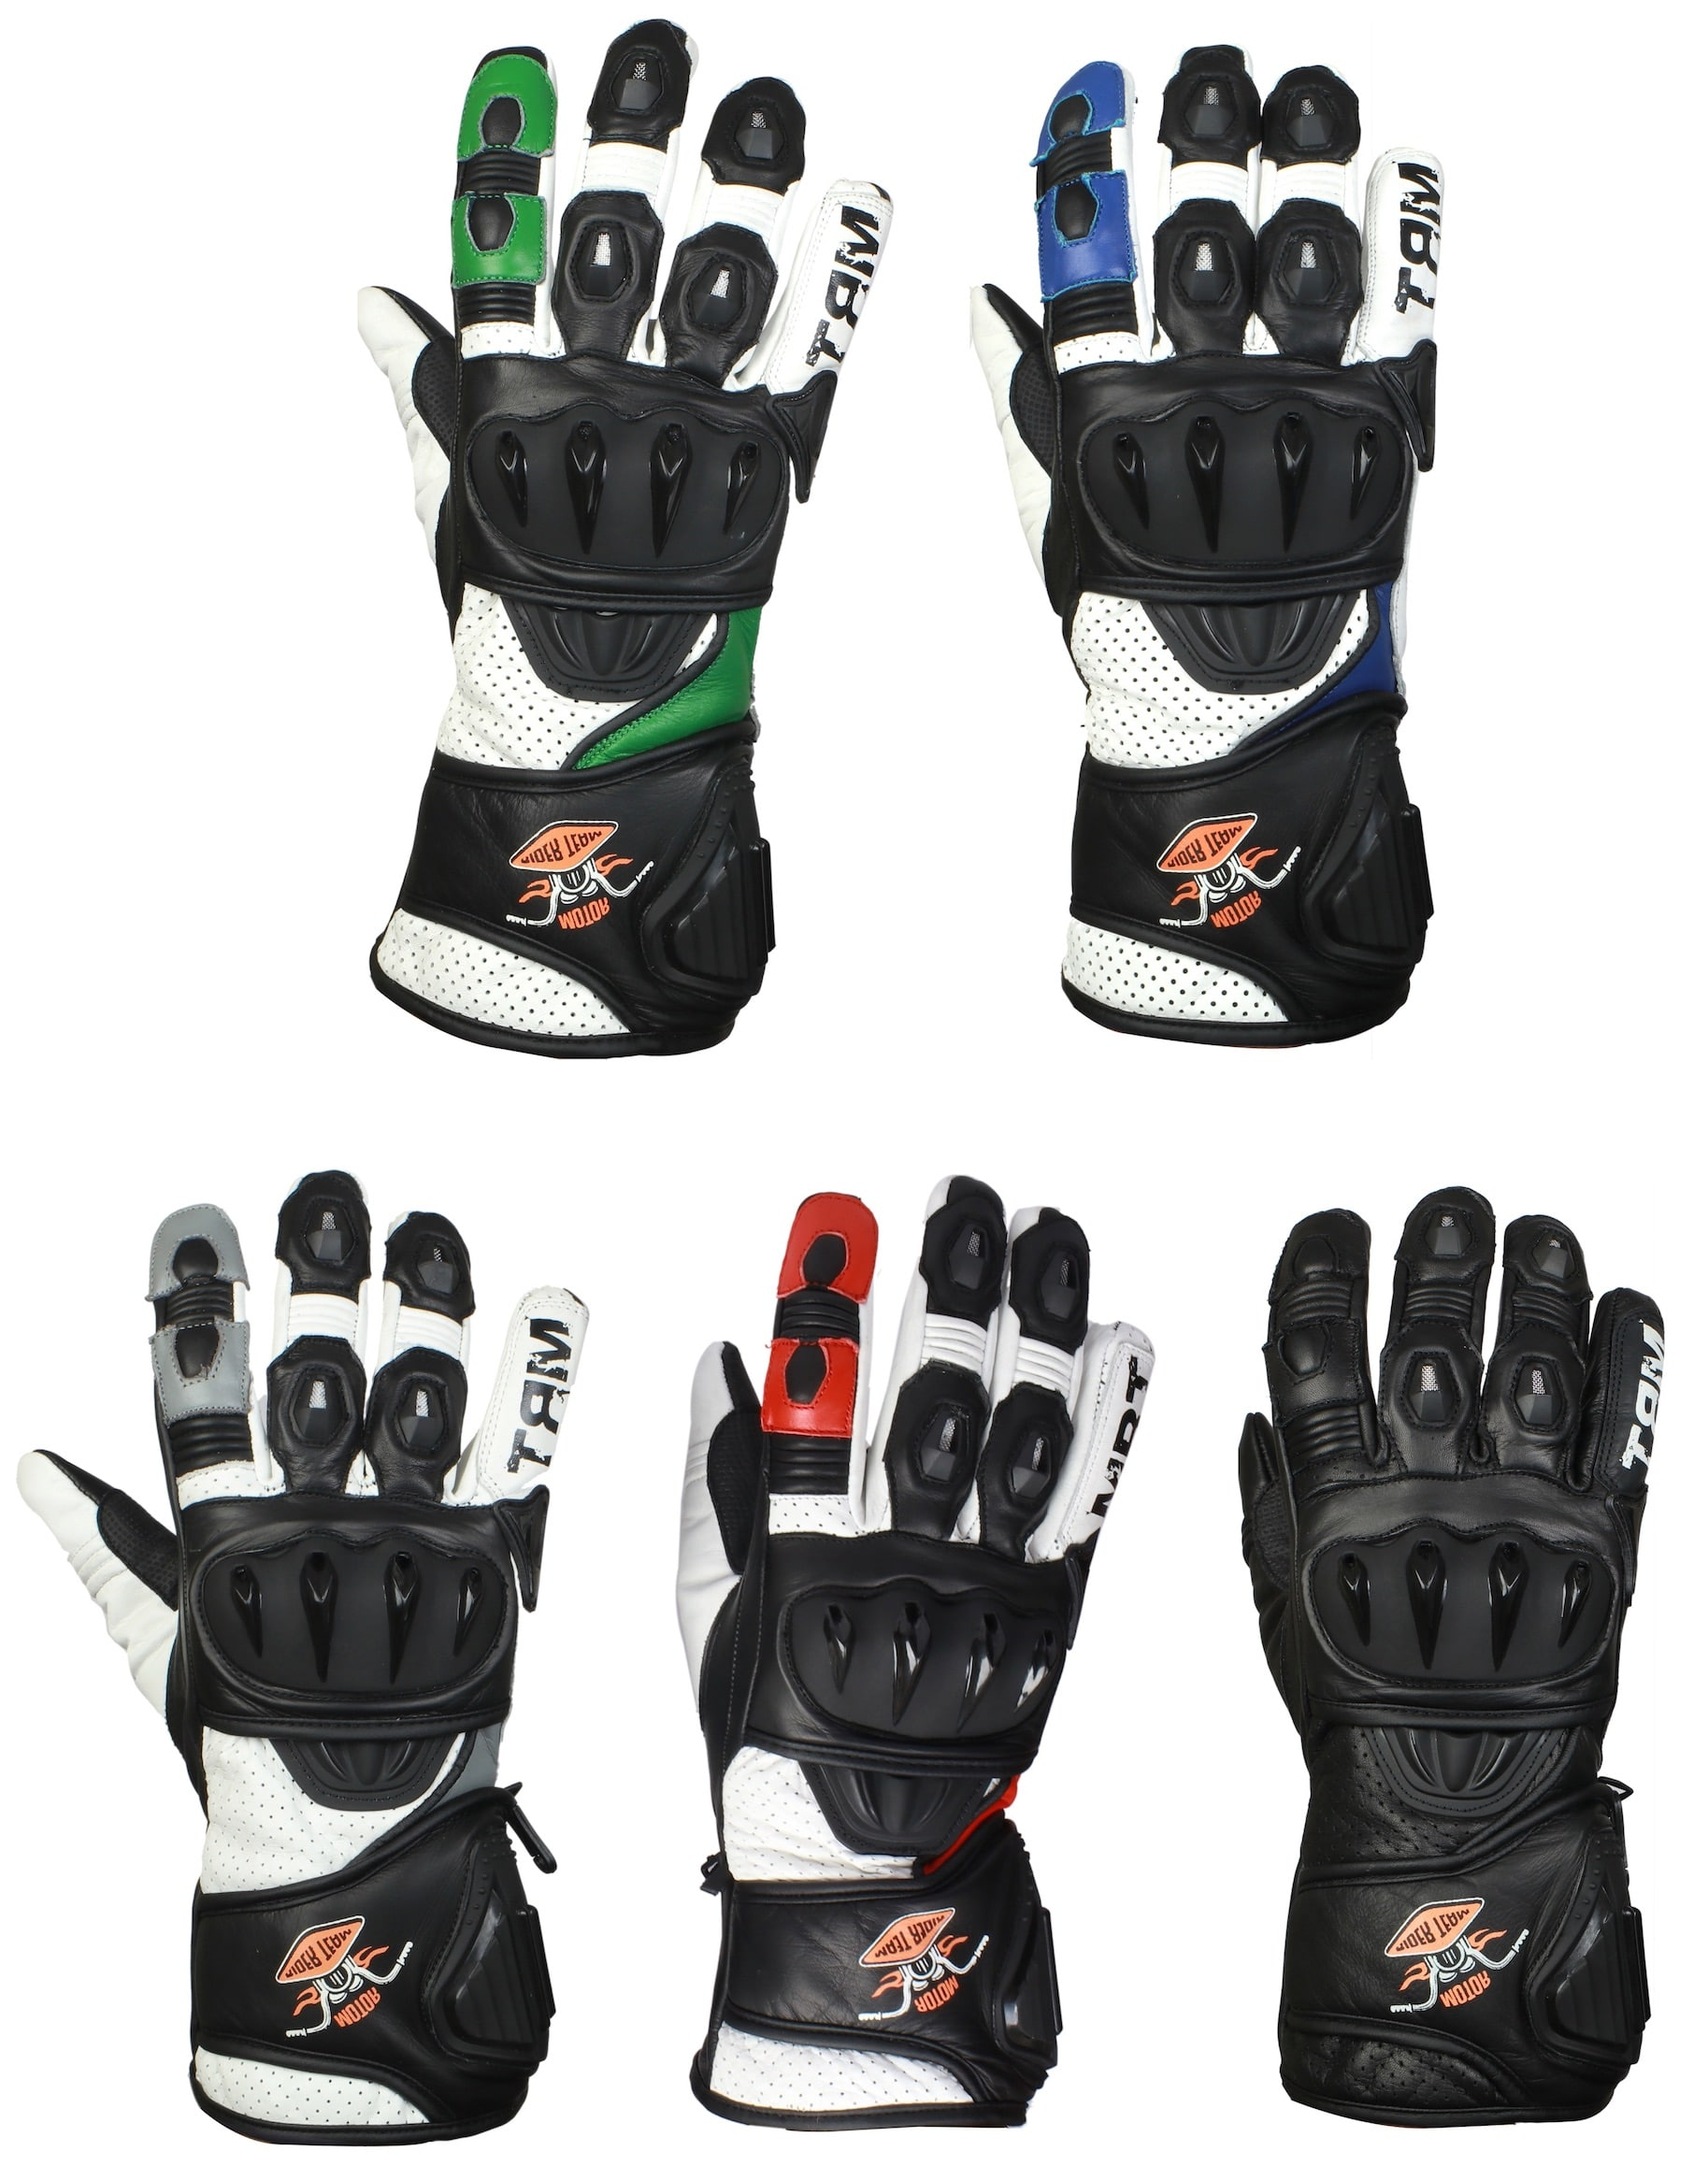 ed455acfc475a MRT Premium Leather Motorcycle Gloves - STORM - The Rider Team